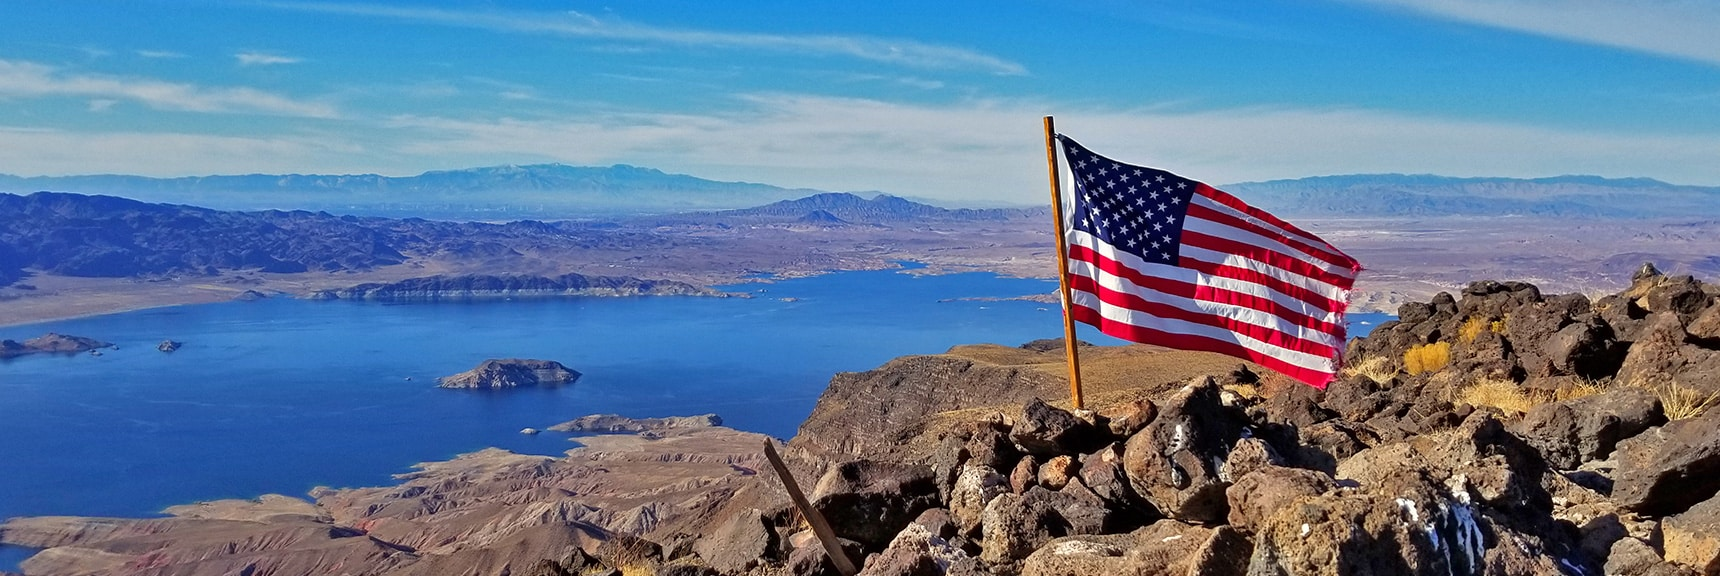 Arrival at Fortification Hill Summit!   Fortification Hill   Lake Mead National Recreation Area, Arizona